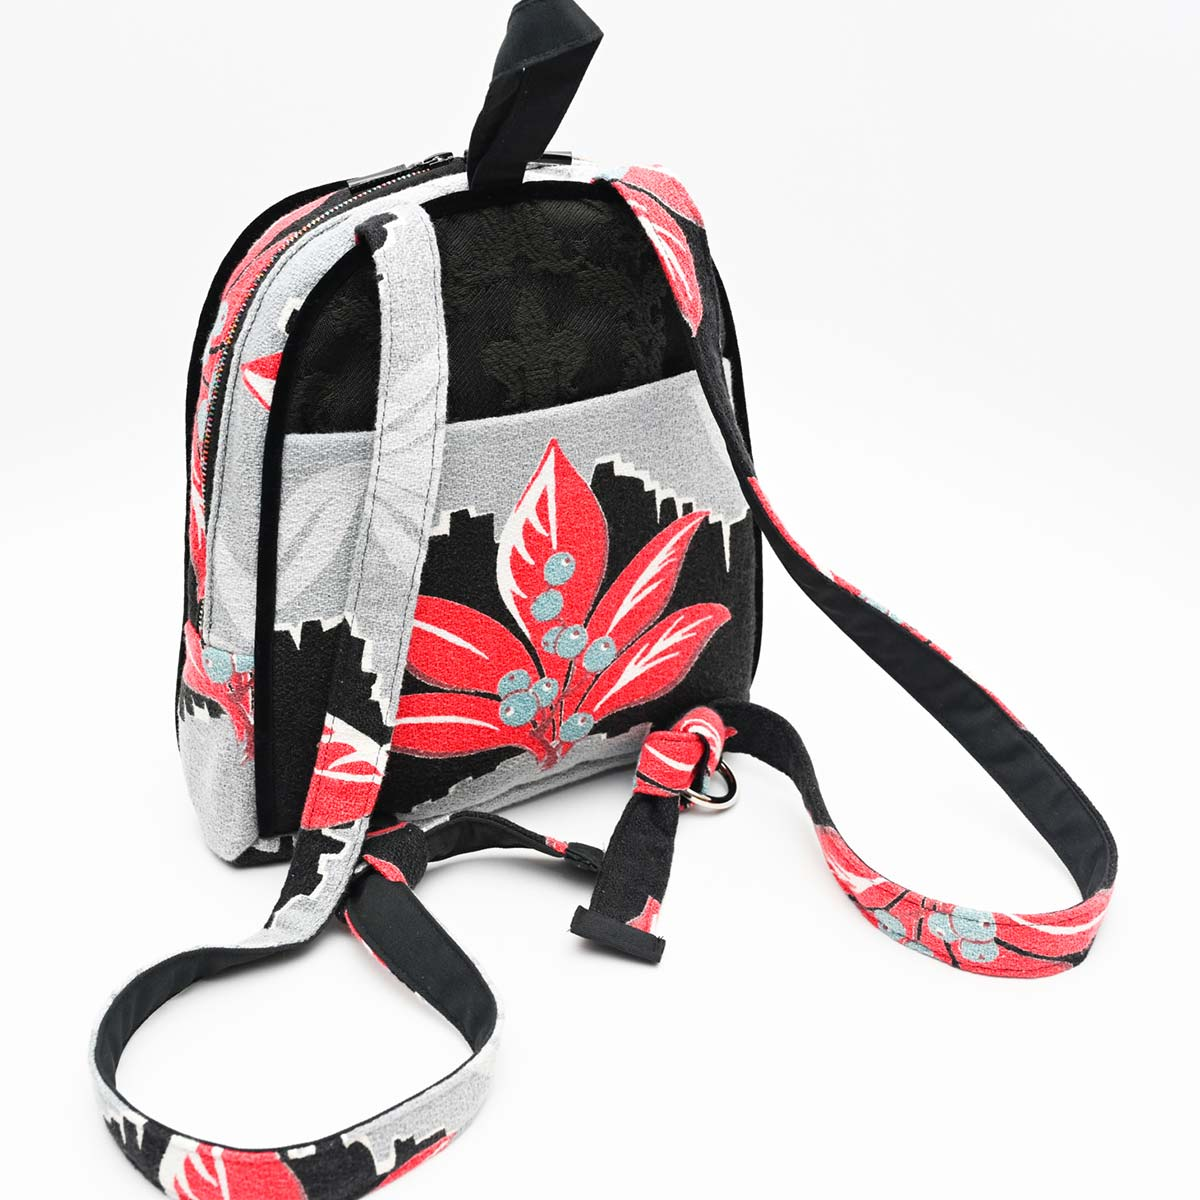 backpack leaf motif on black